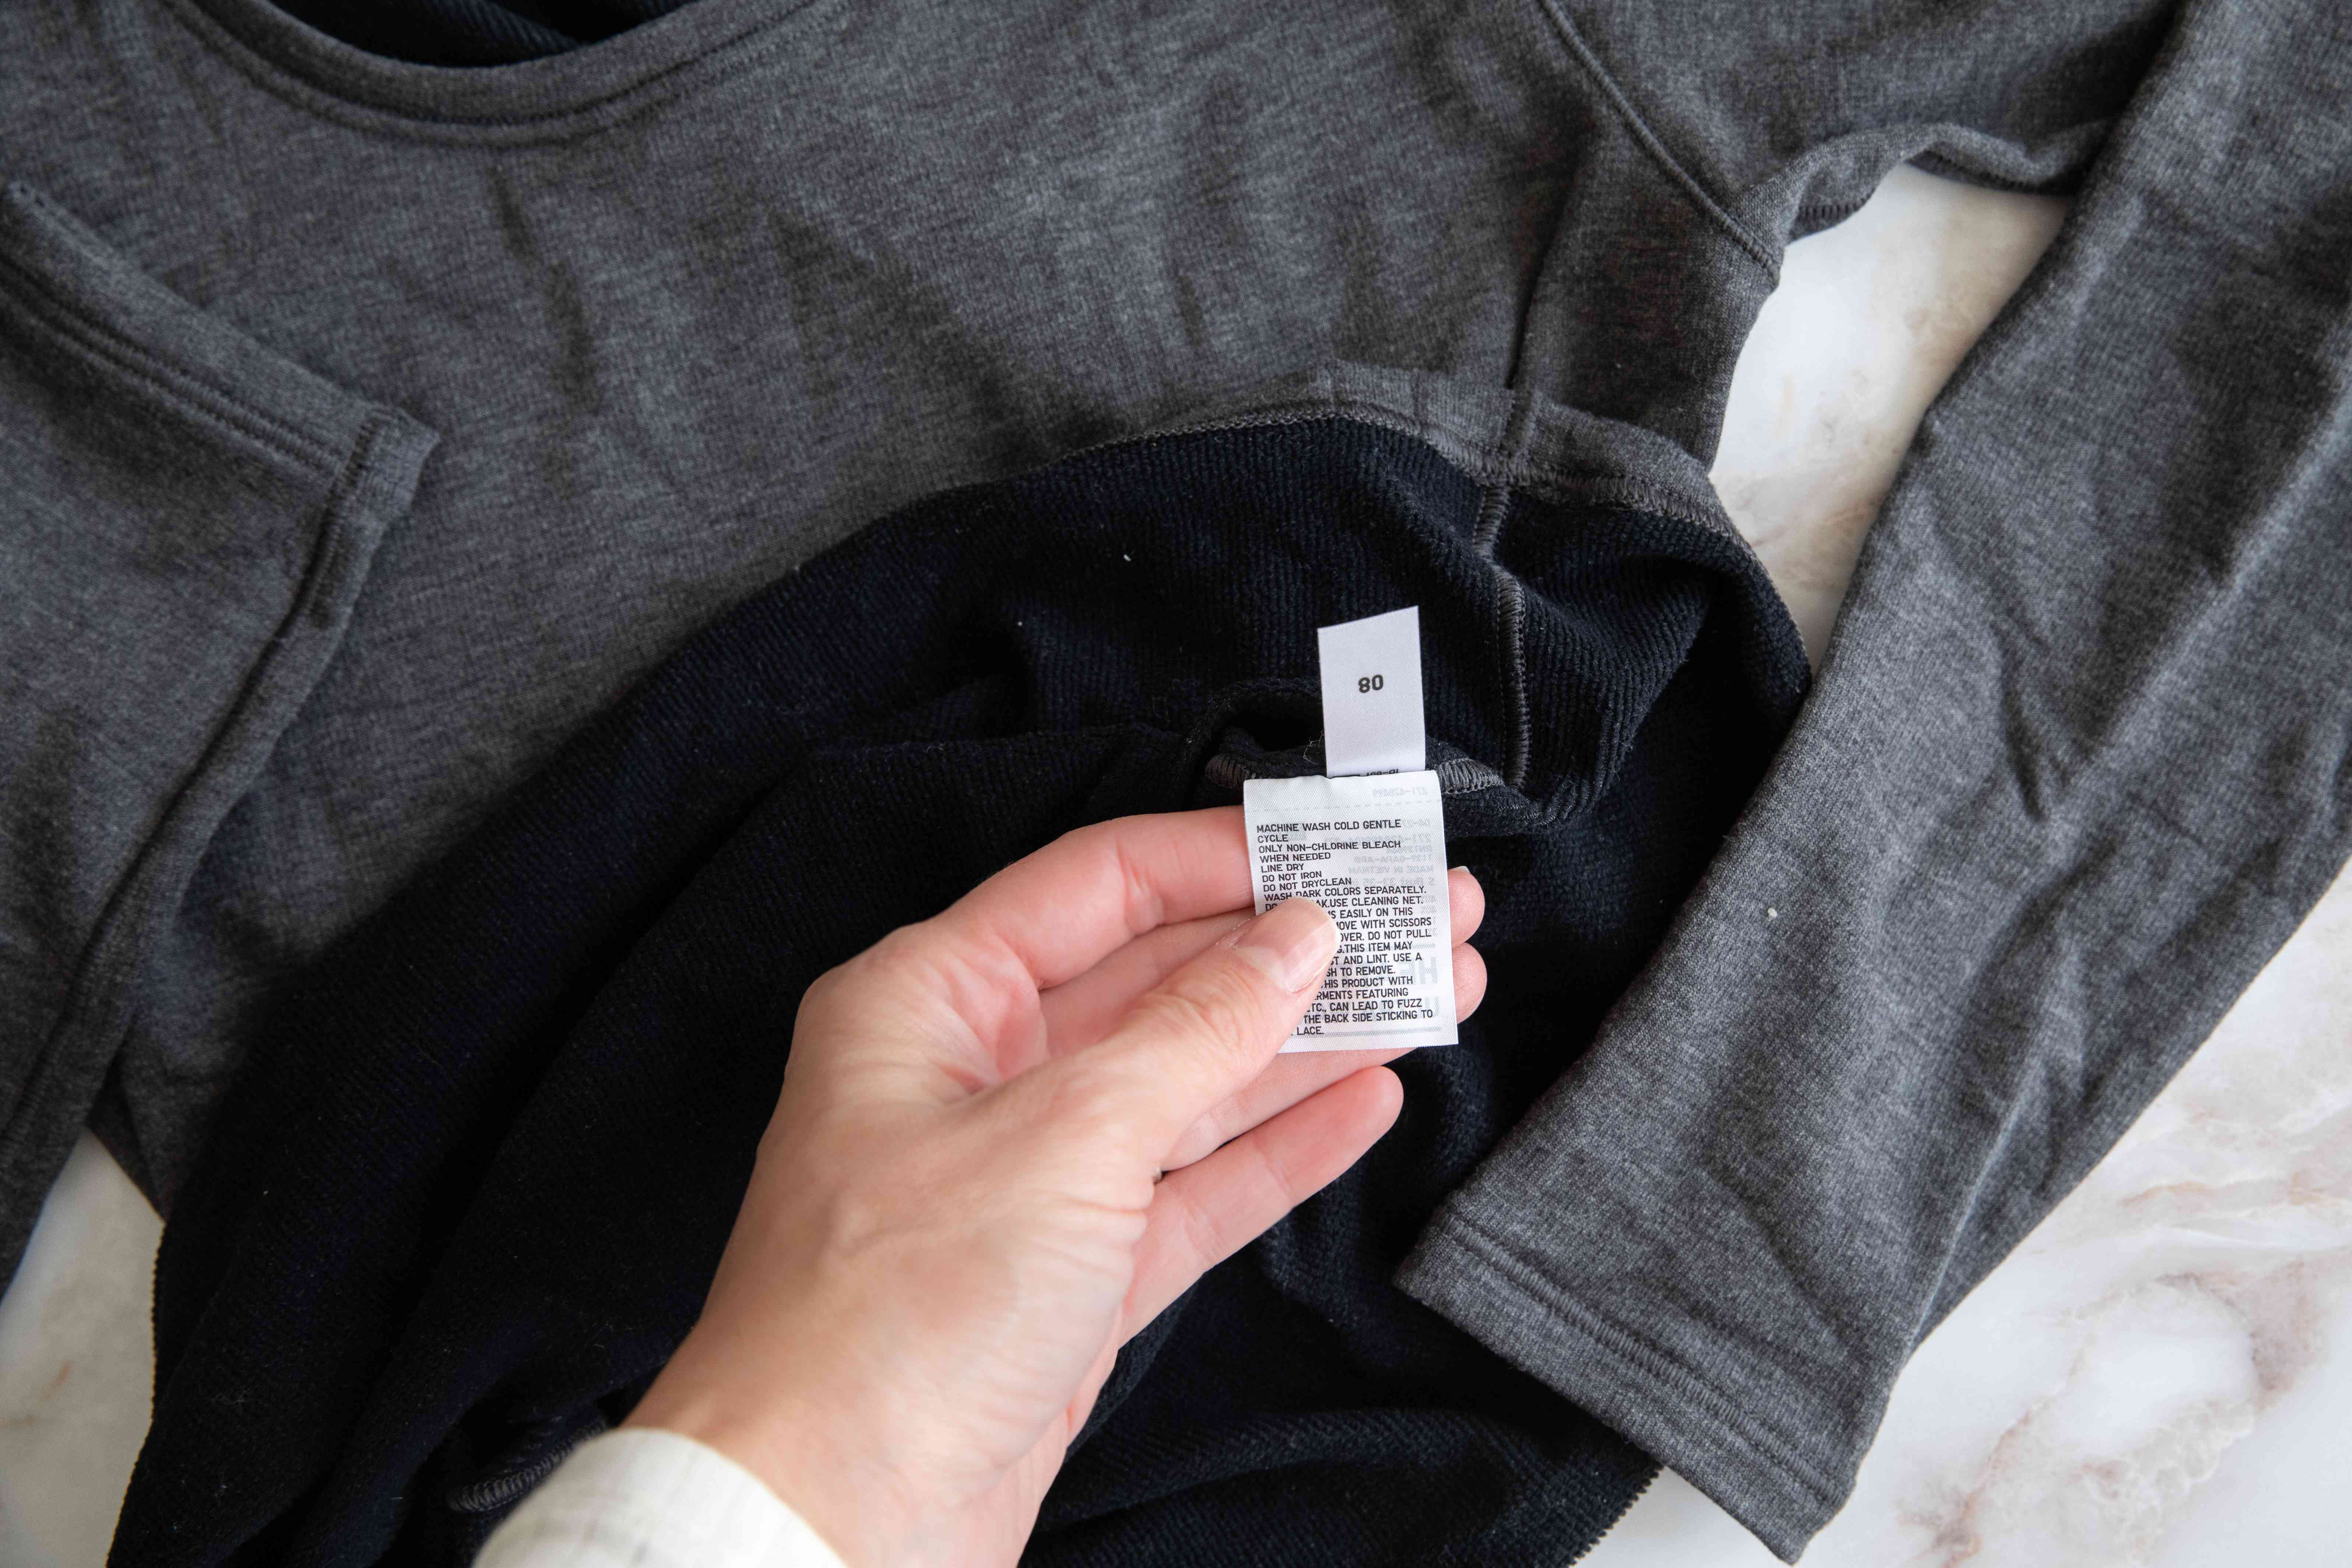 Care labels on gray long sleeved shirt being shown